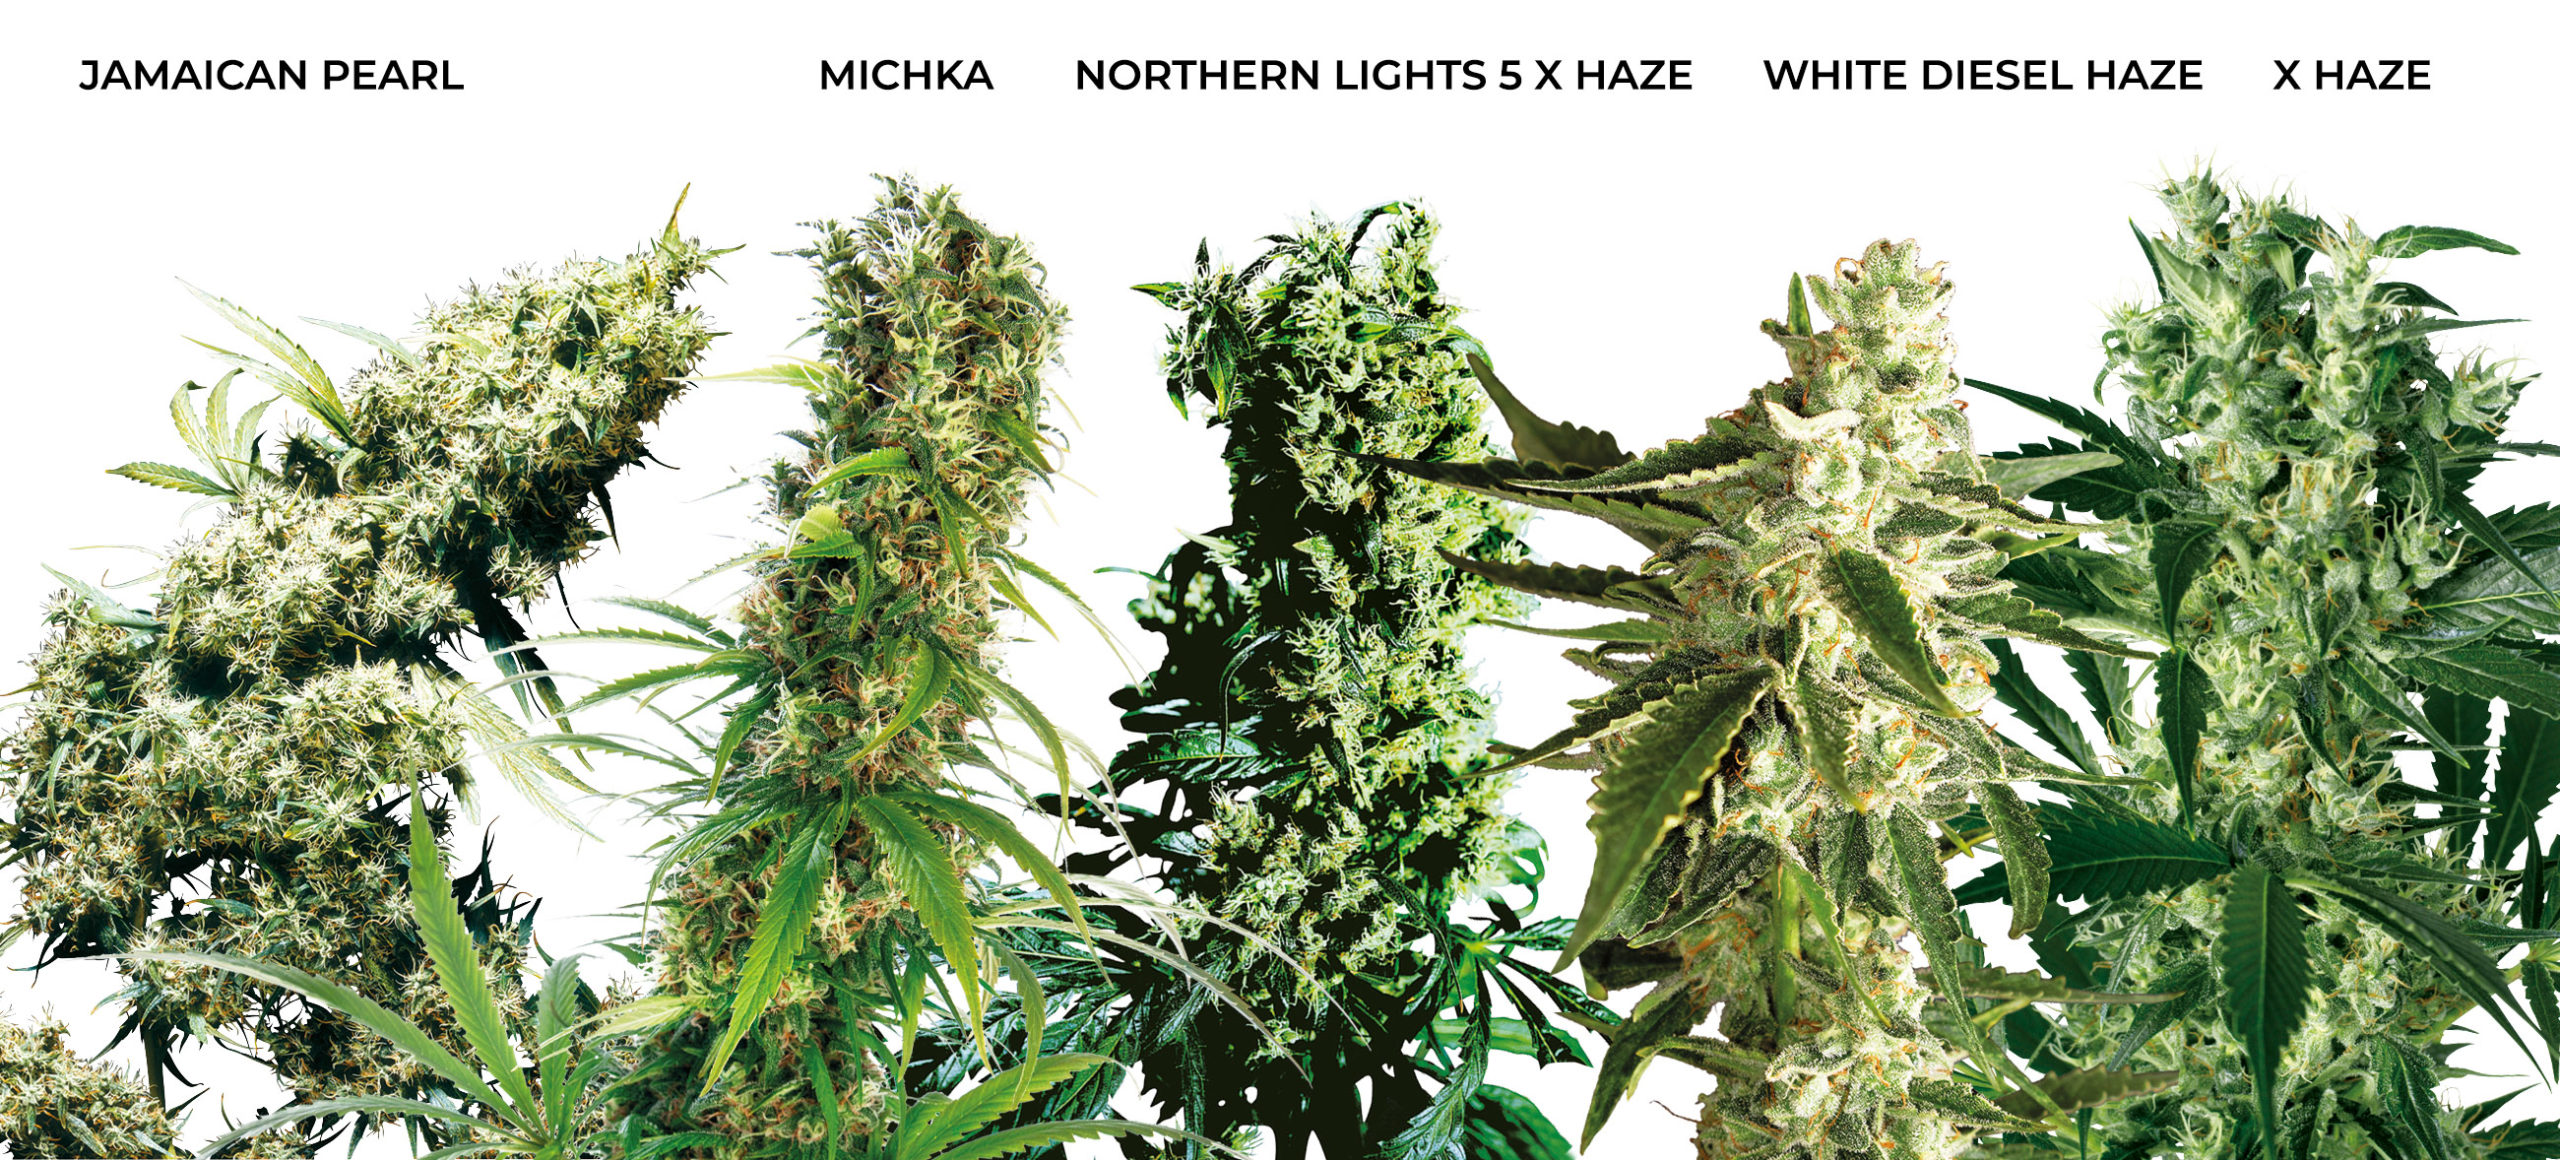 5 große Buds von medizinischem Sativa-Cannabis. Jamaican Pearl, Michka, Northern Lights #5 x Haze, White Diesel Haze und X Haze.